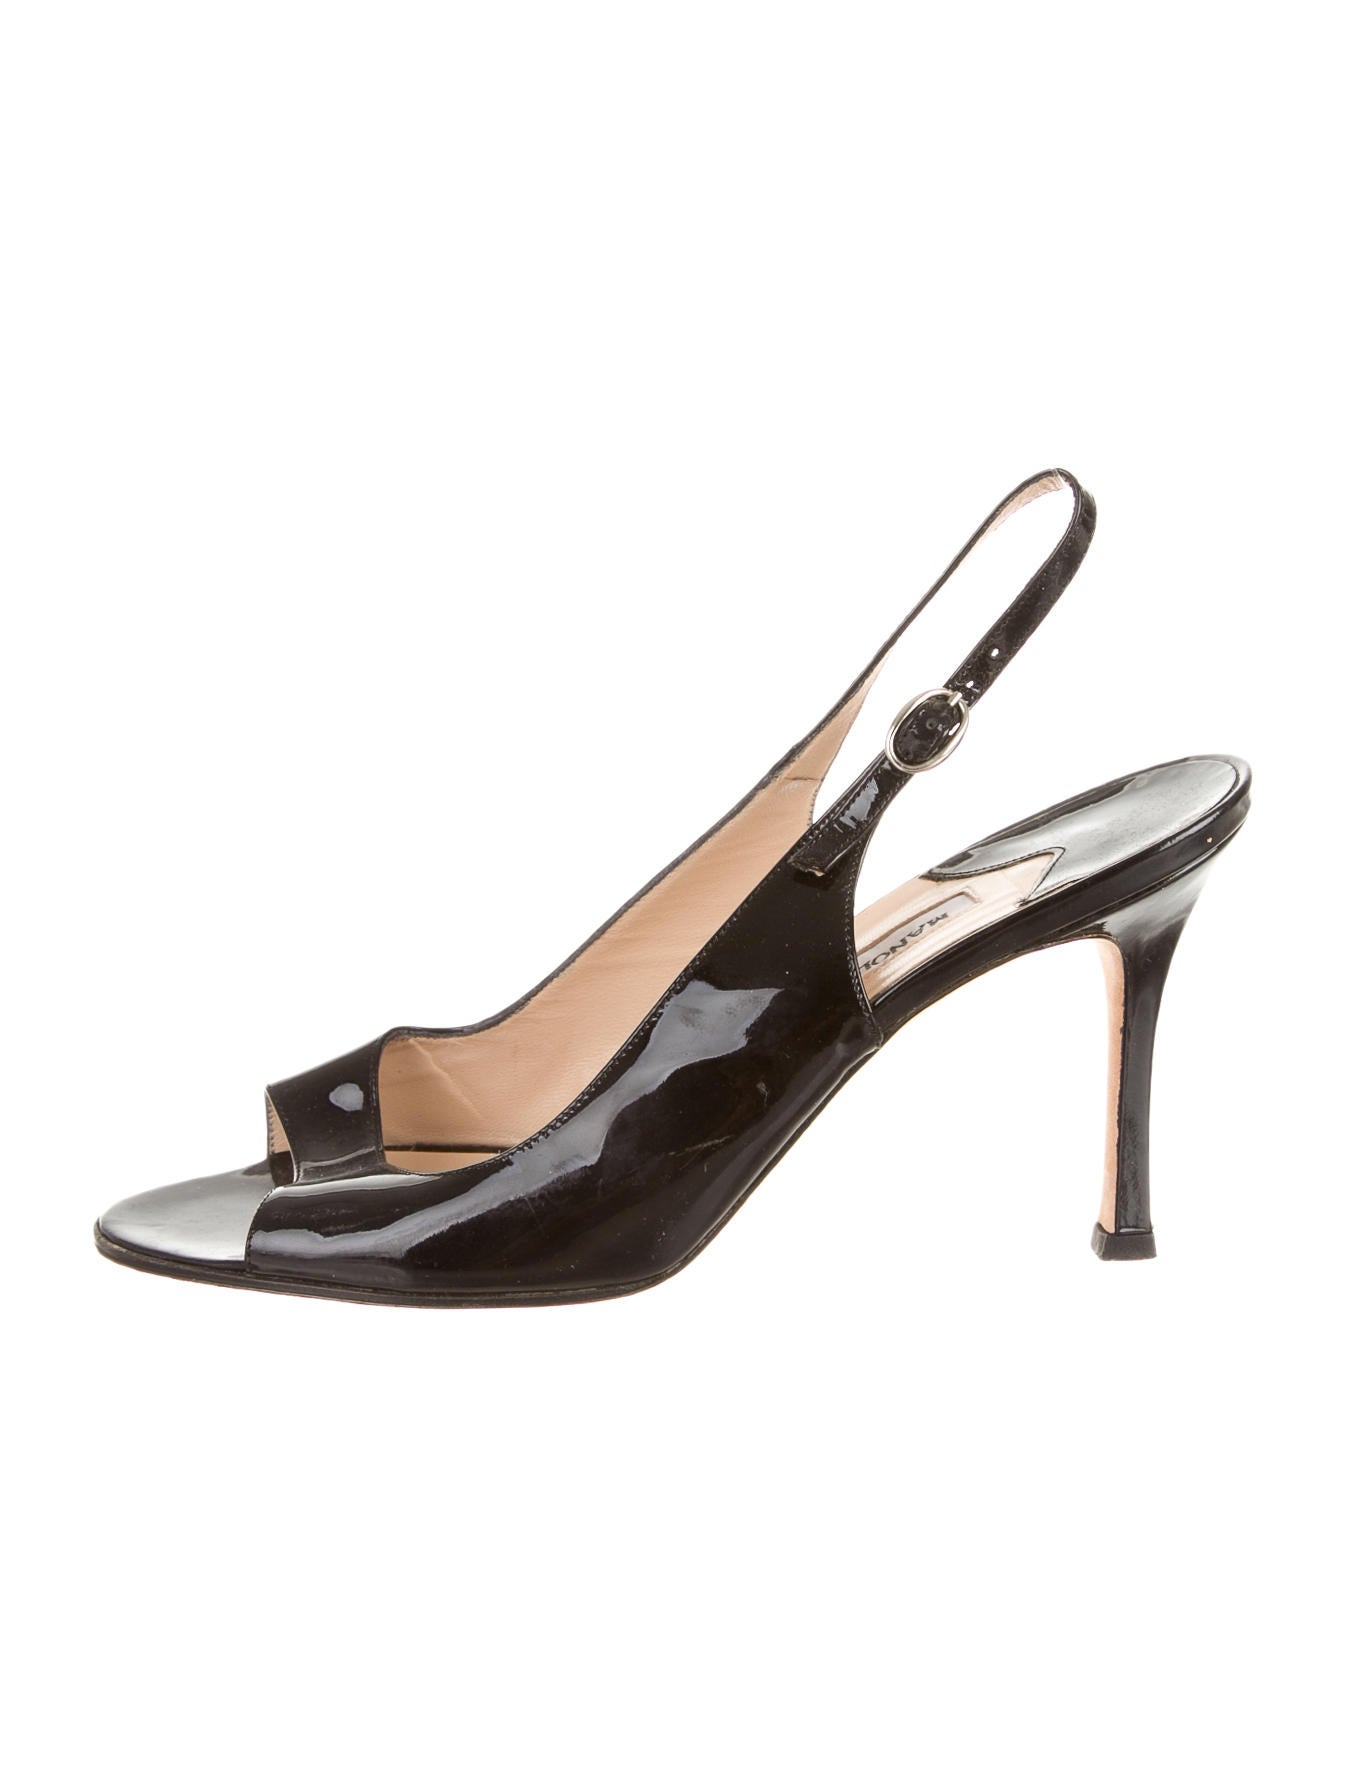 Manolo blahnik pumps shoes moo34566 the realreal for Shoes by manolo blahnik